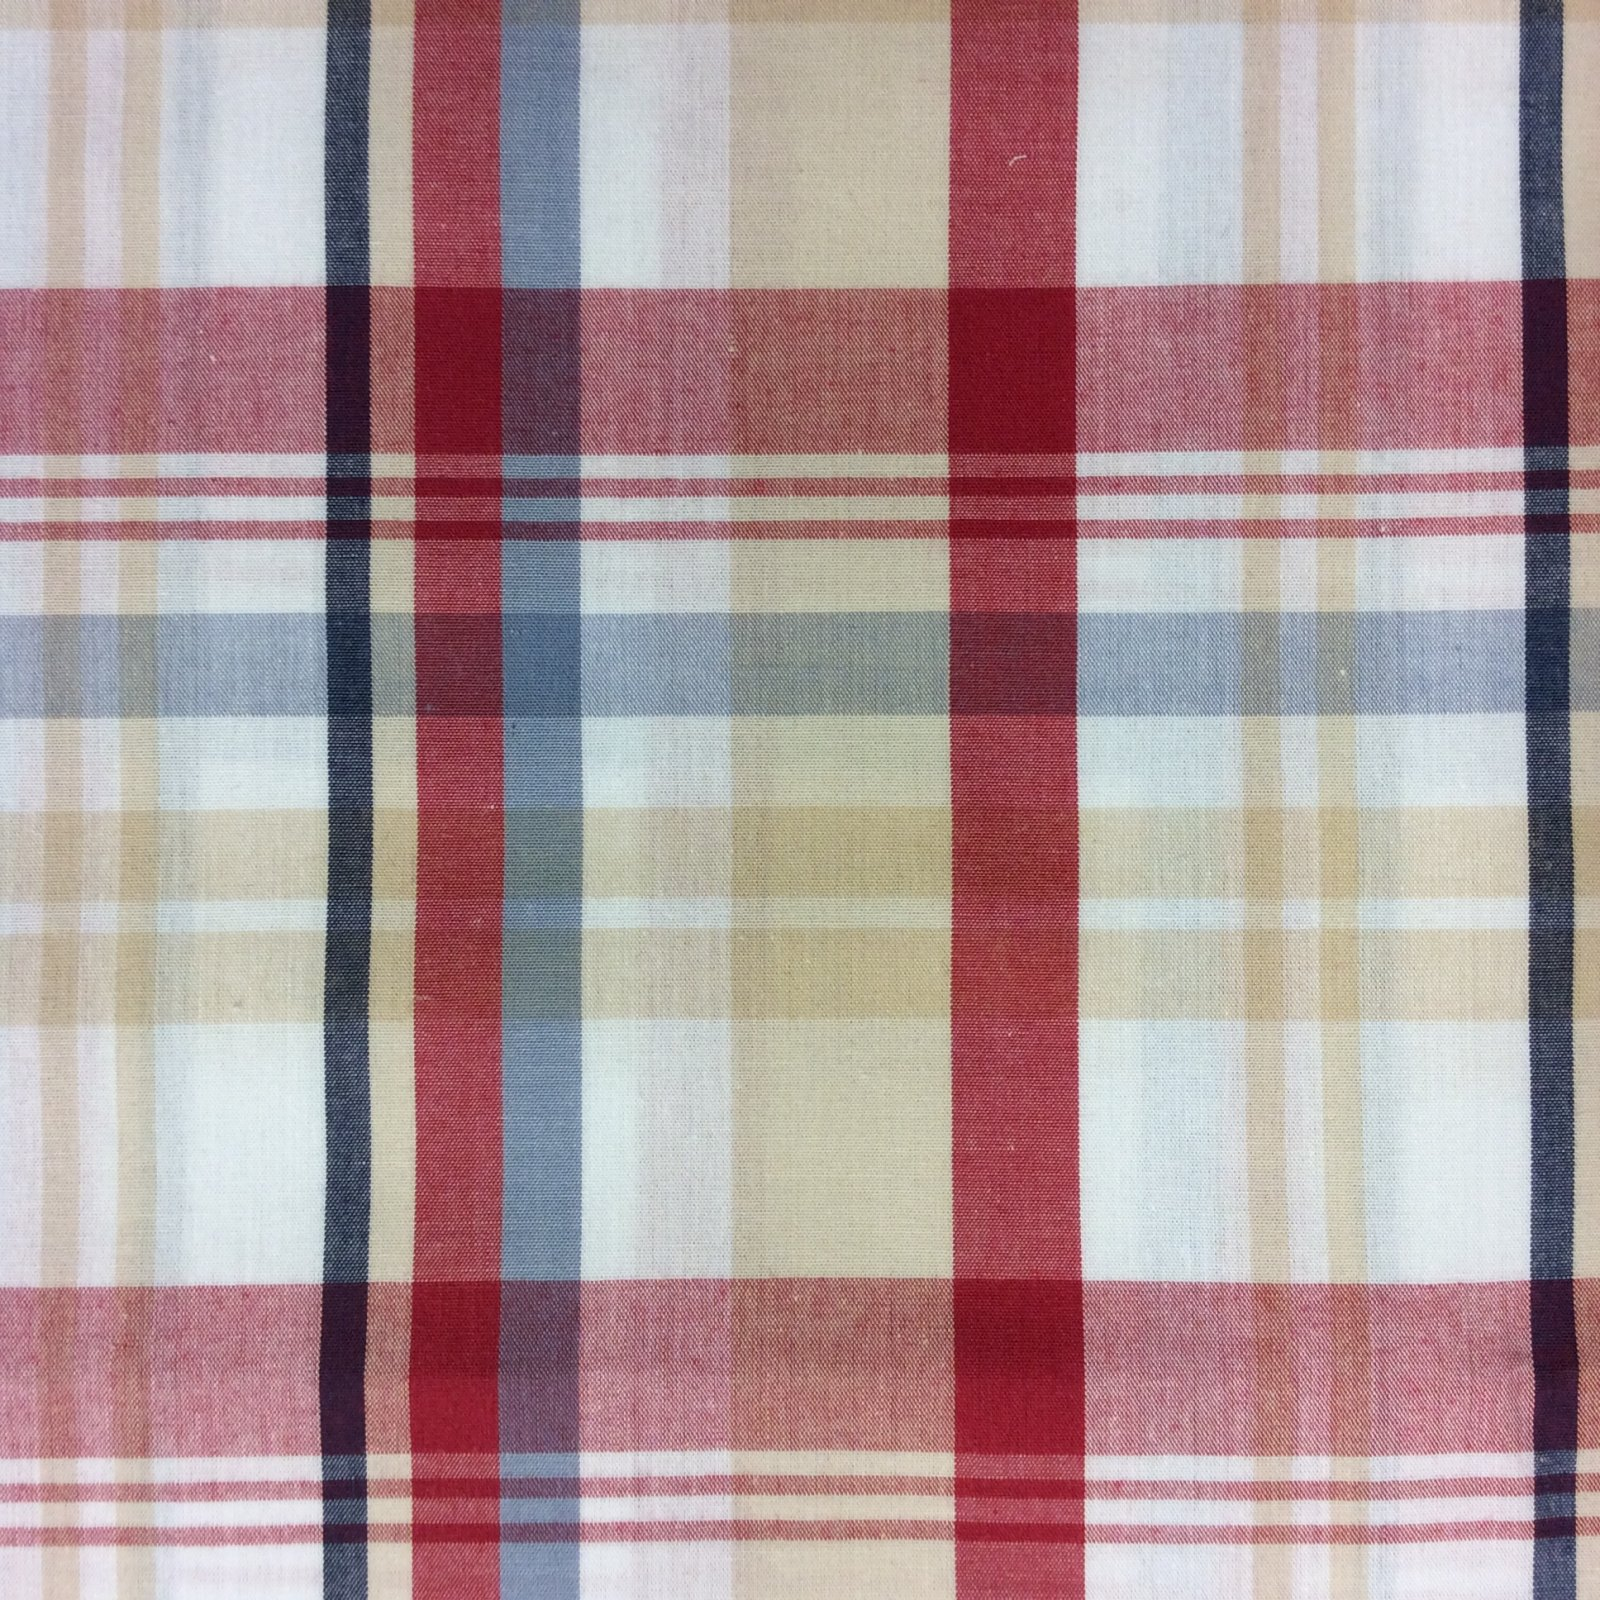 Tartan Plaid Dress Shirt Menswear Shirting Apparel Cotton Quilt Fabric MD73